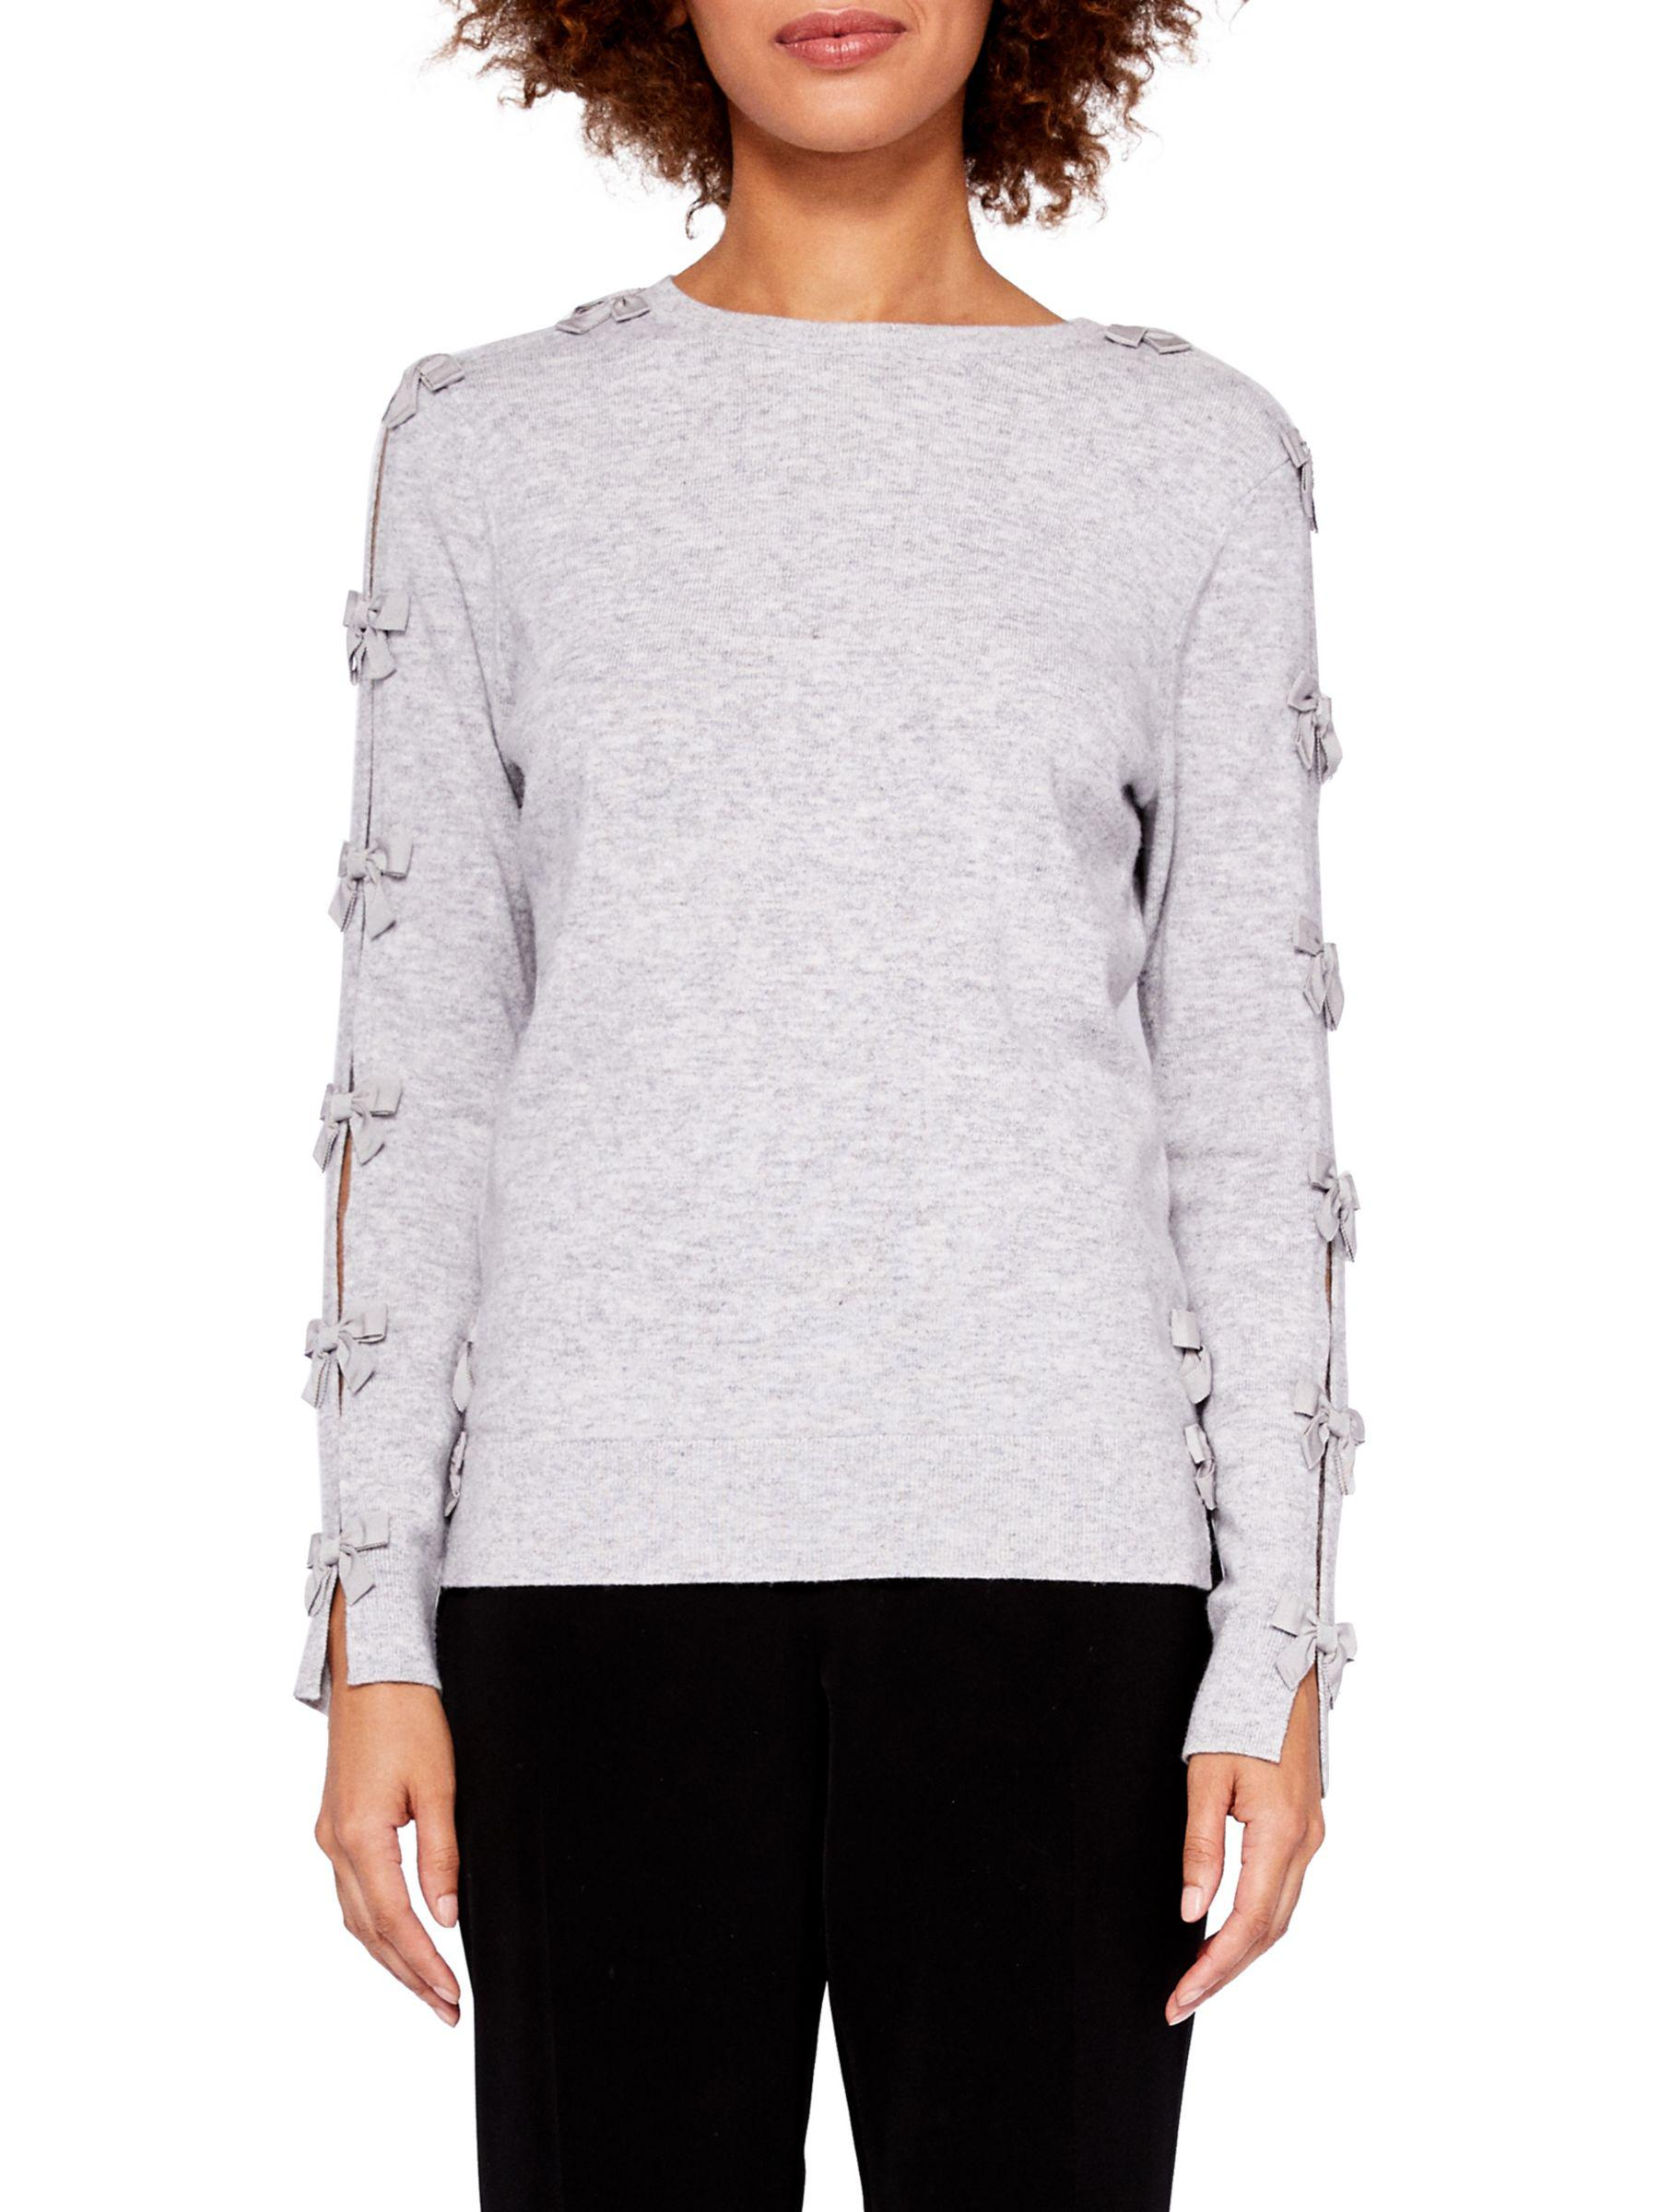 5ee7f7a97367f0 Ted Baker Sakarie Bow Sleeve Jumper in Gray - Lyst